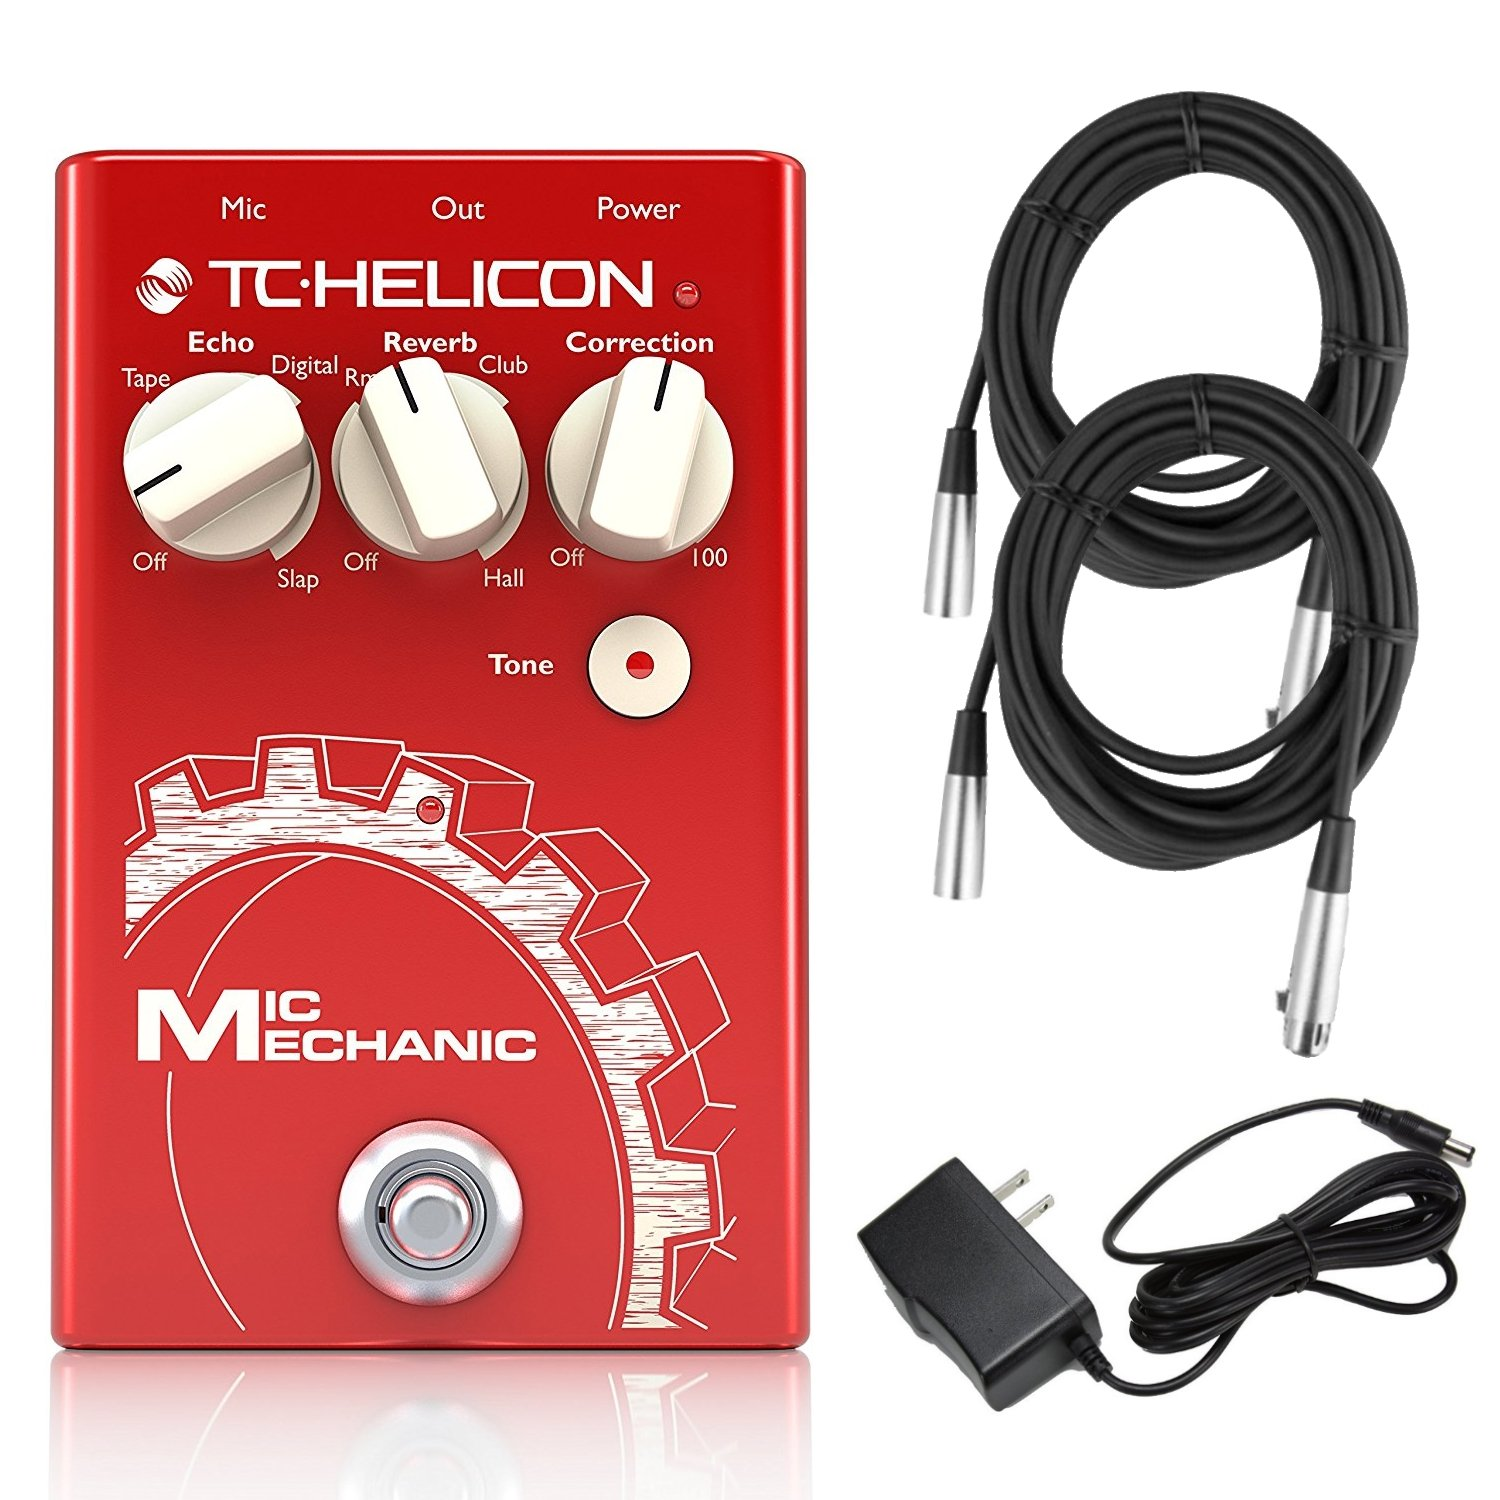 TC Helicon Mic Mechanic 2 Vocal Effects Processor Bundle with (2) 20' XLR Cables and 9V Power Supply TC Electronic